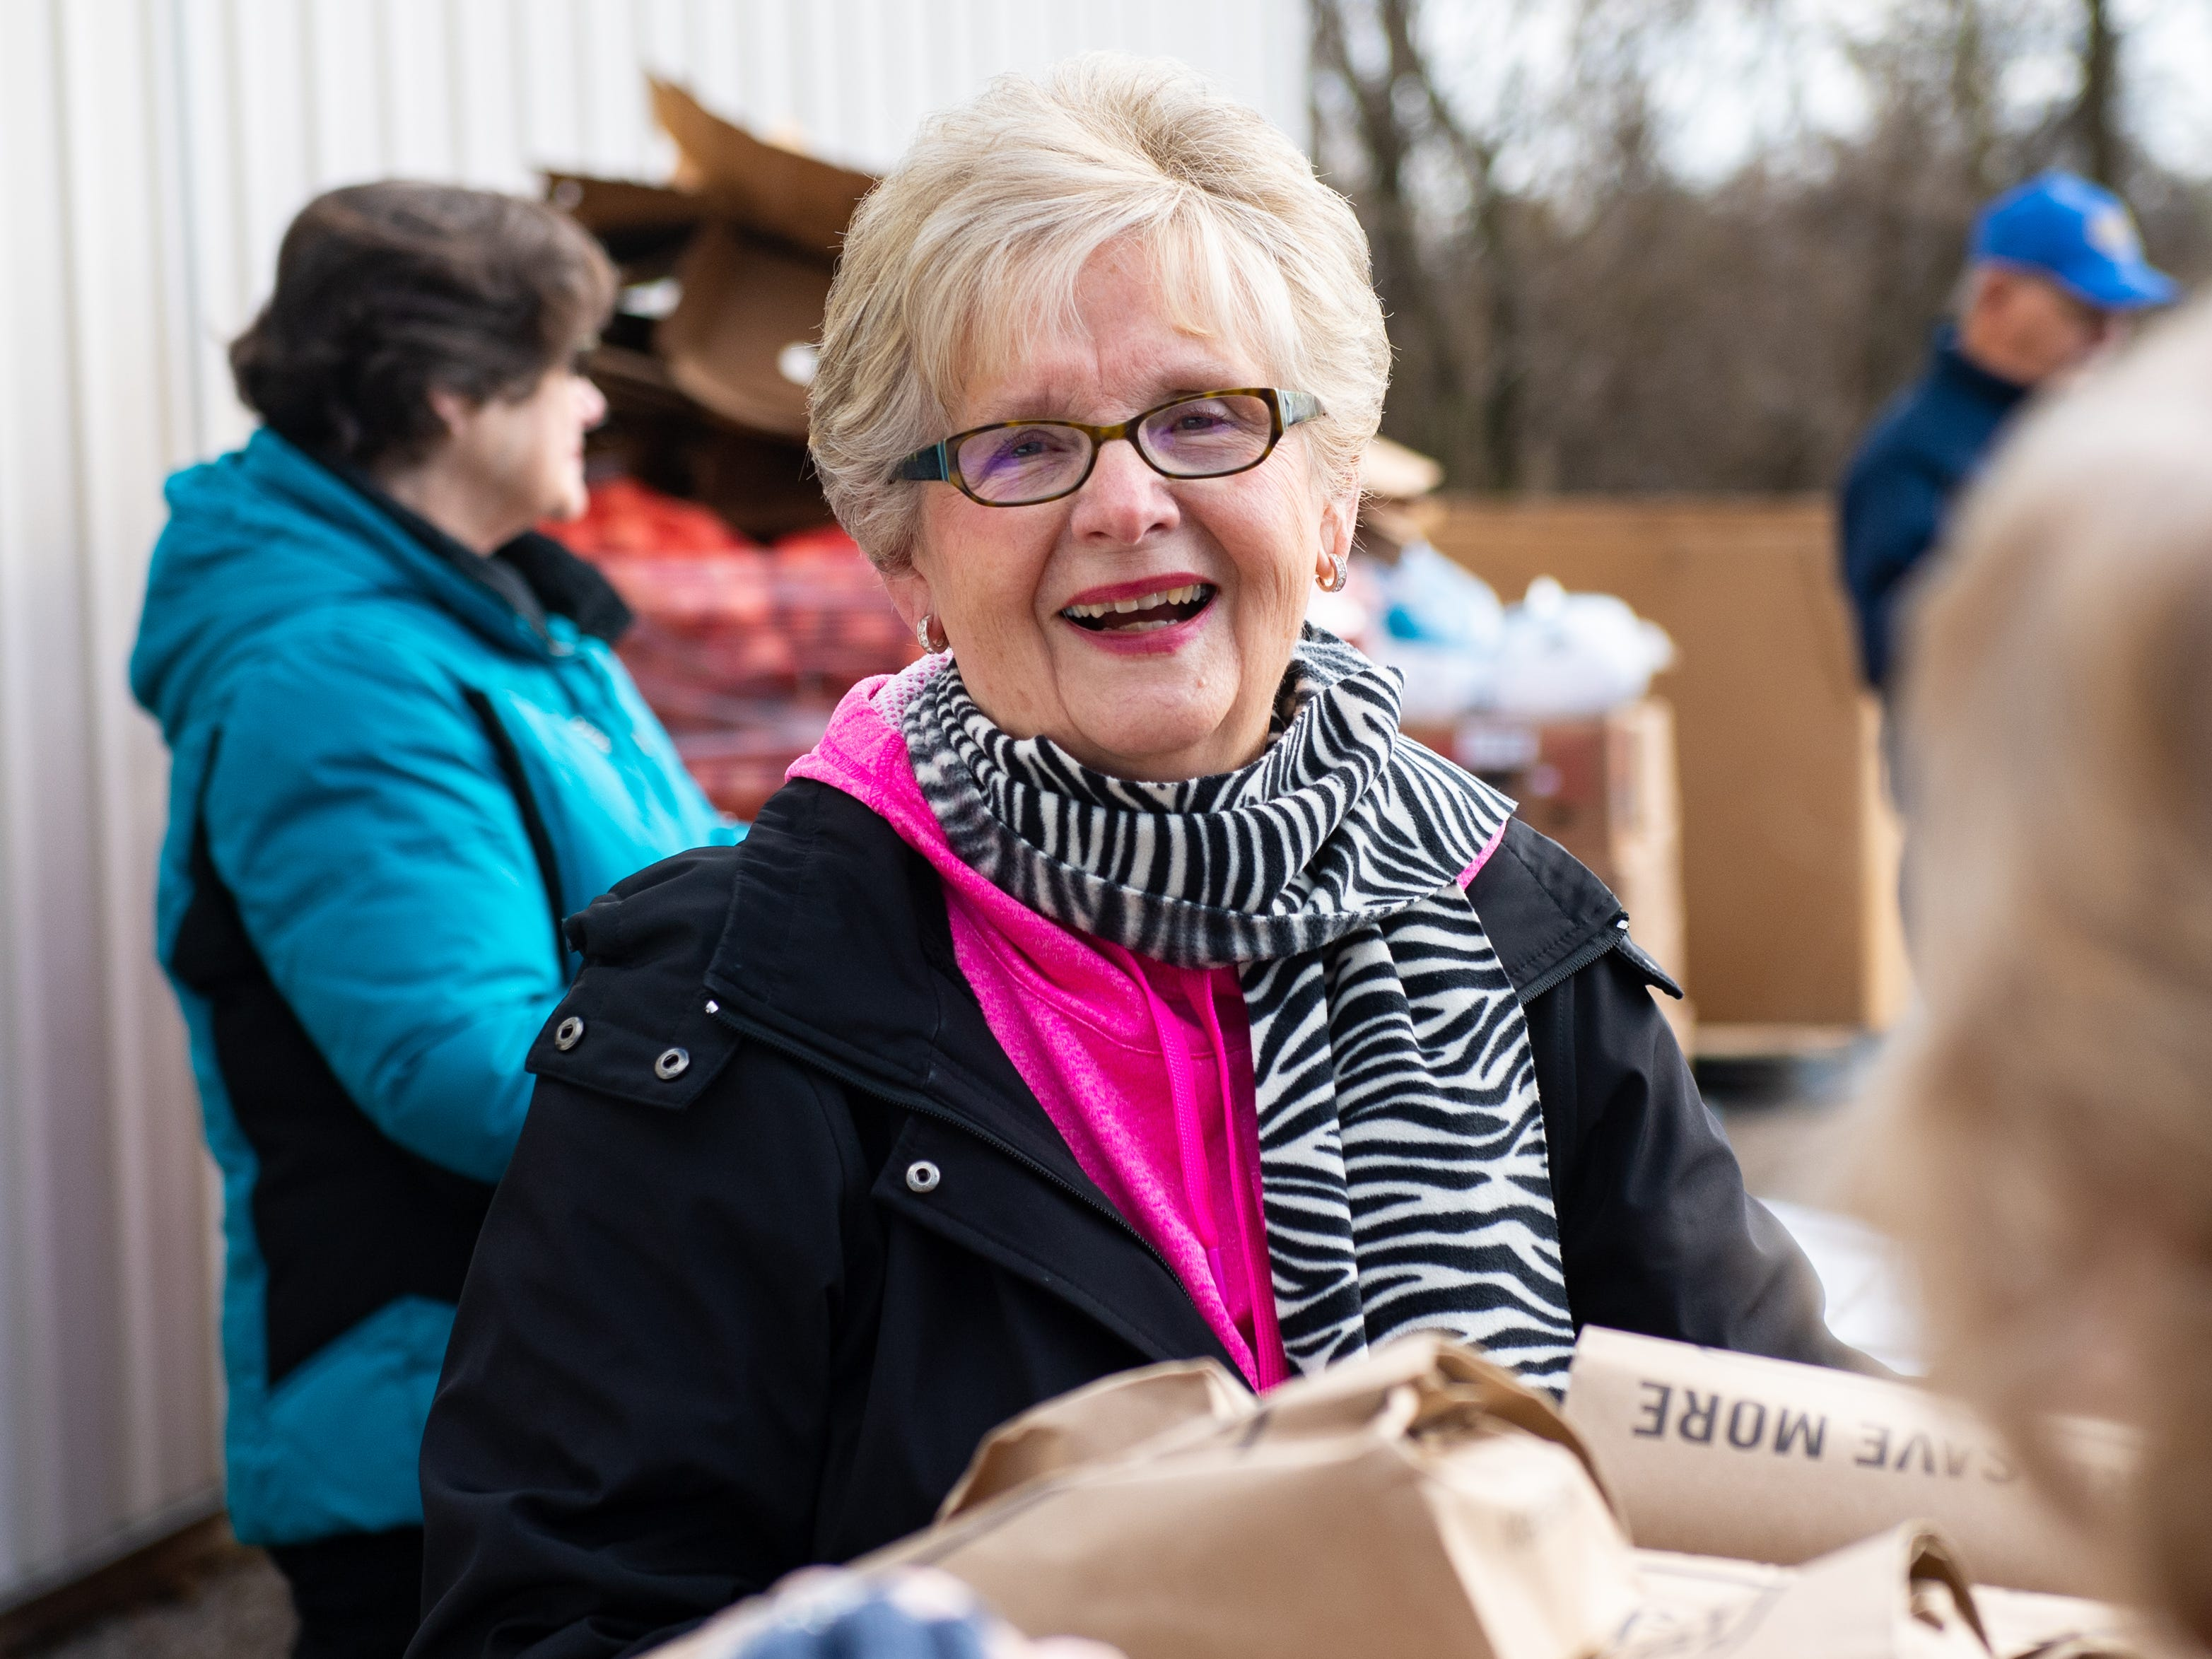 Bonnie Brodbeck is all smiles as she hands out food during the Thanksgiving food giveaway provided by New Hope Ministries, November 16, 2018.